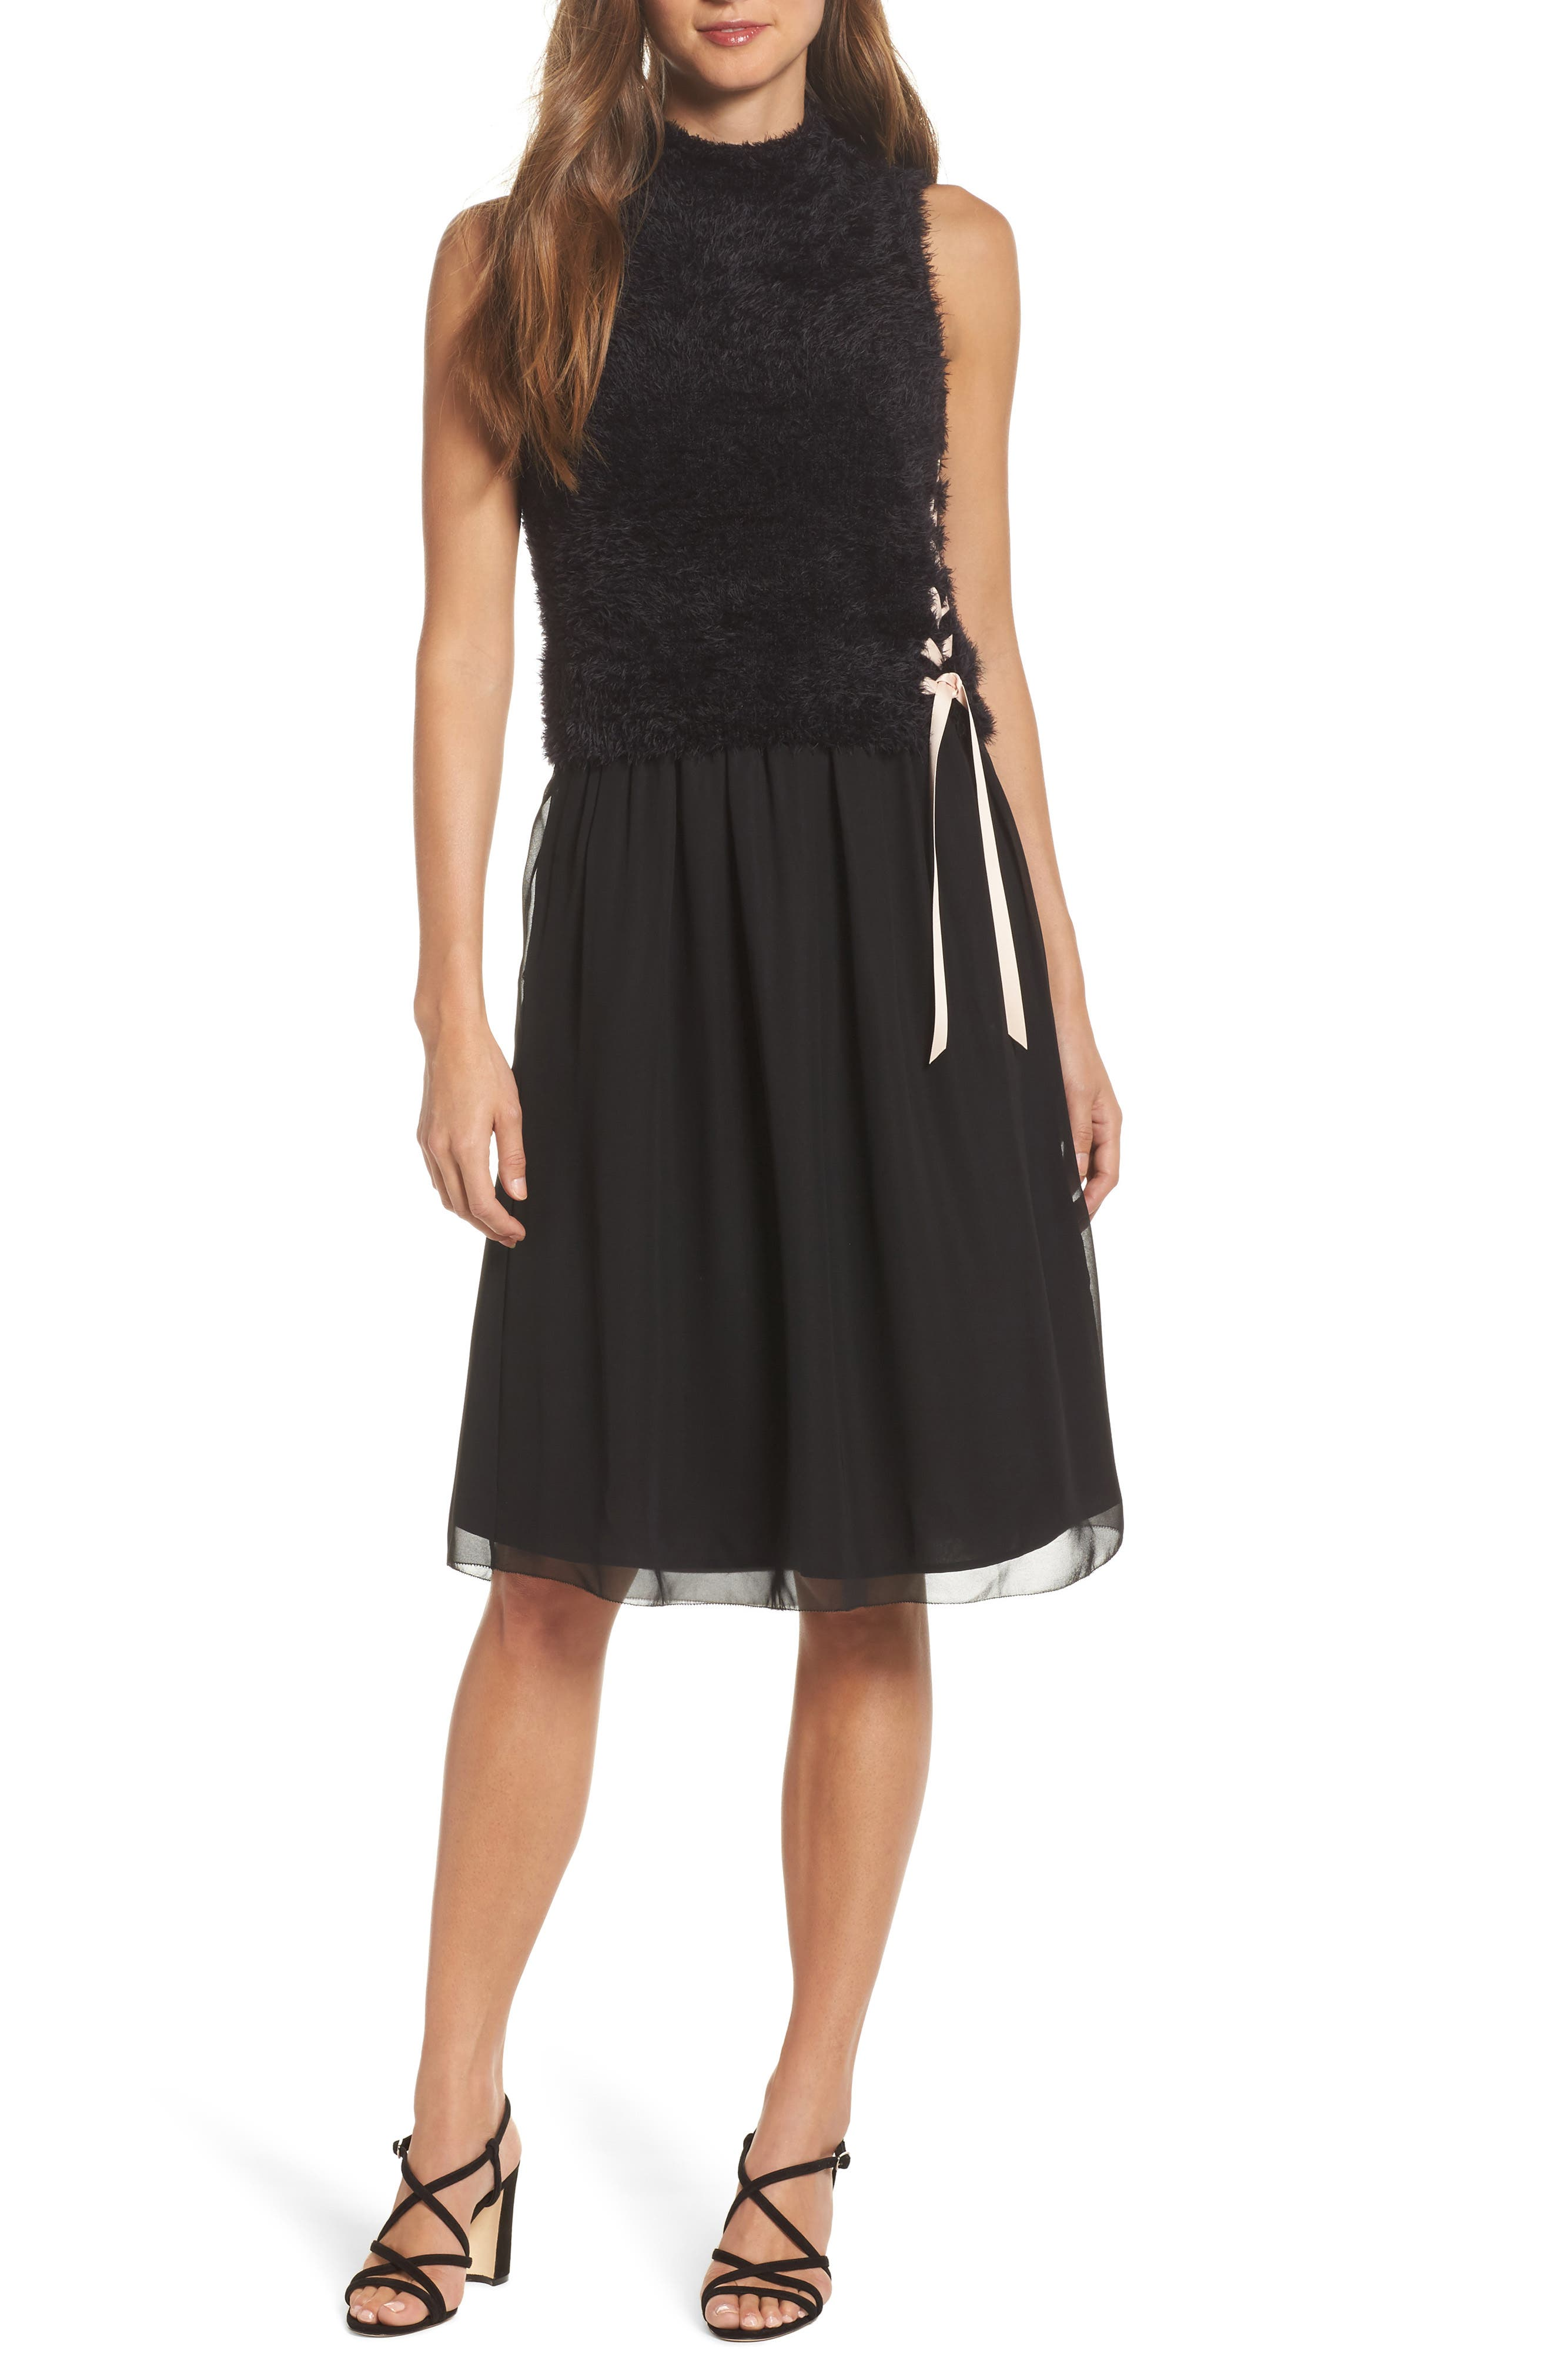 NIC + ZOE Lace-Up Dress,                         Main,                         color, 004